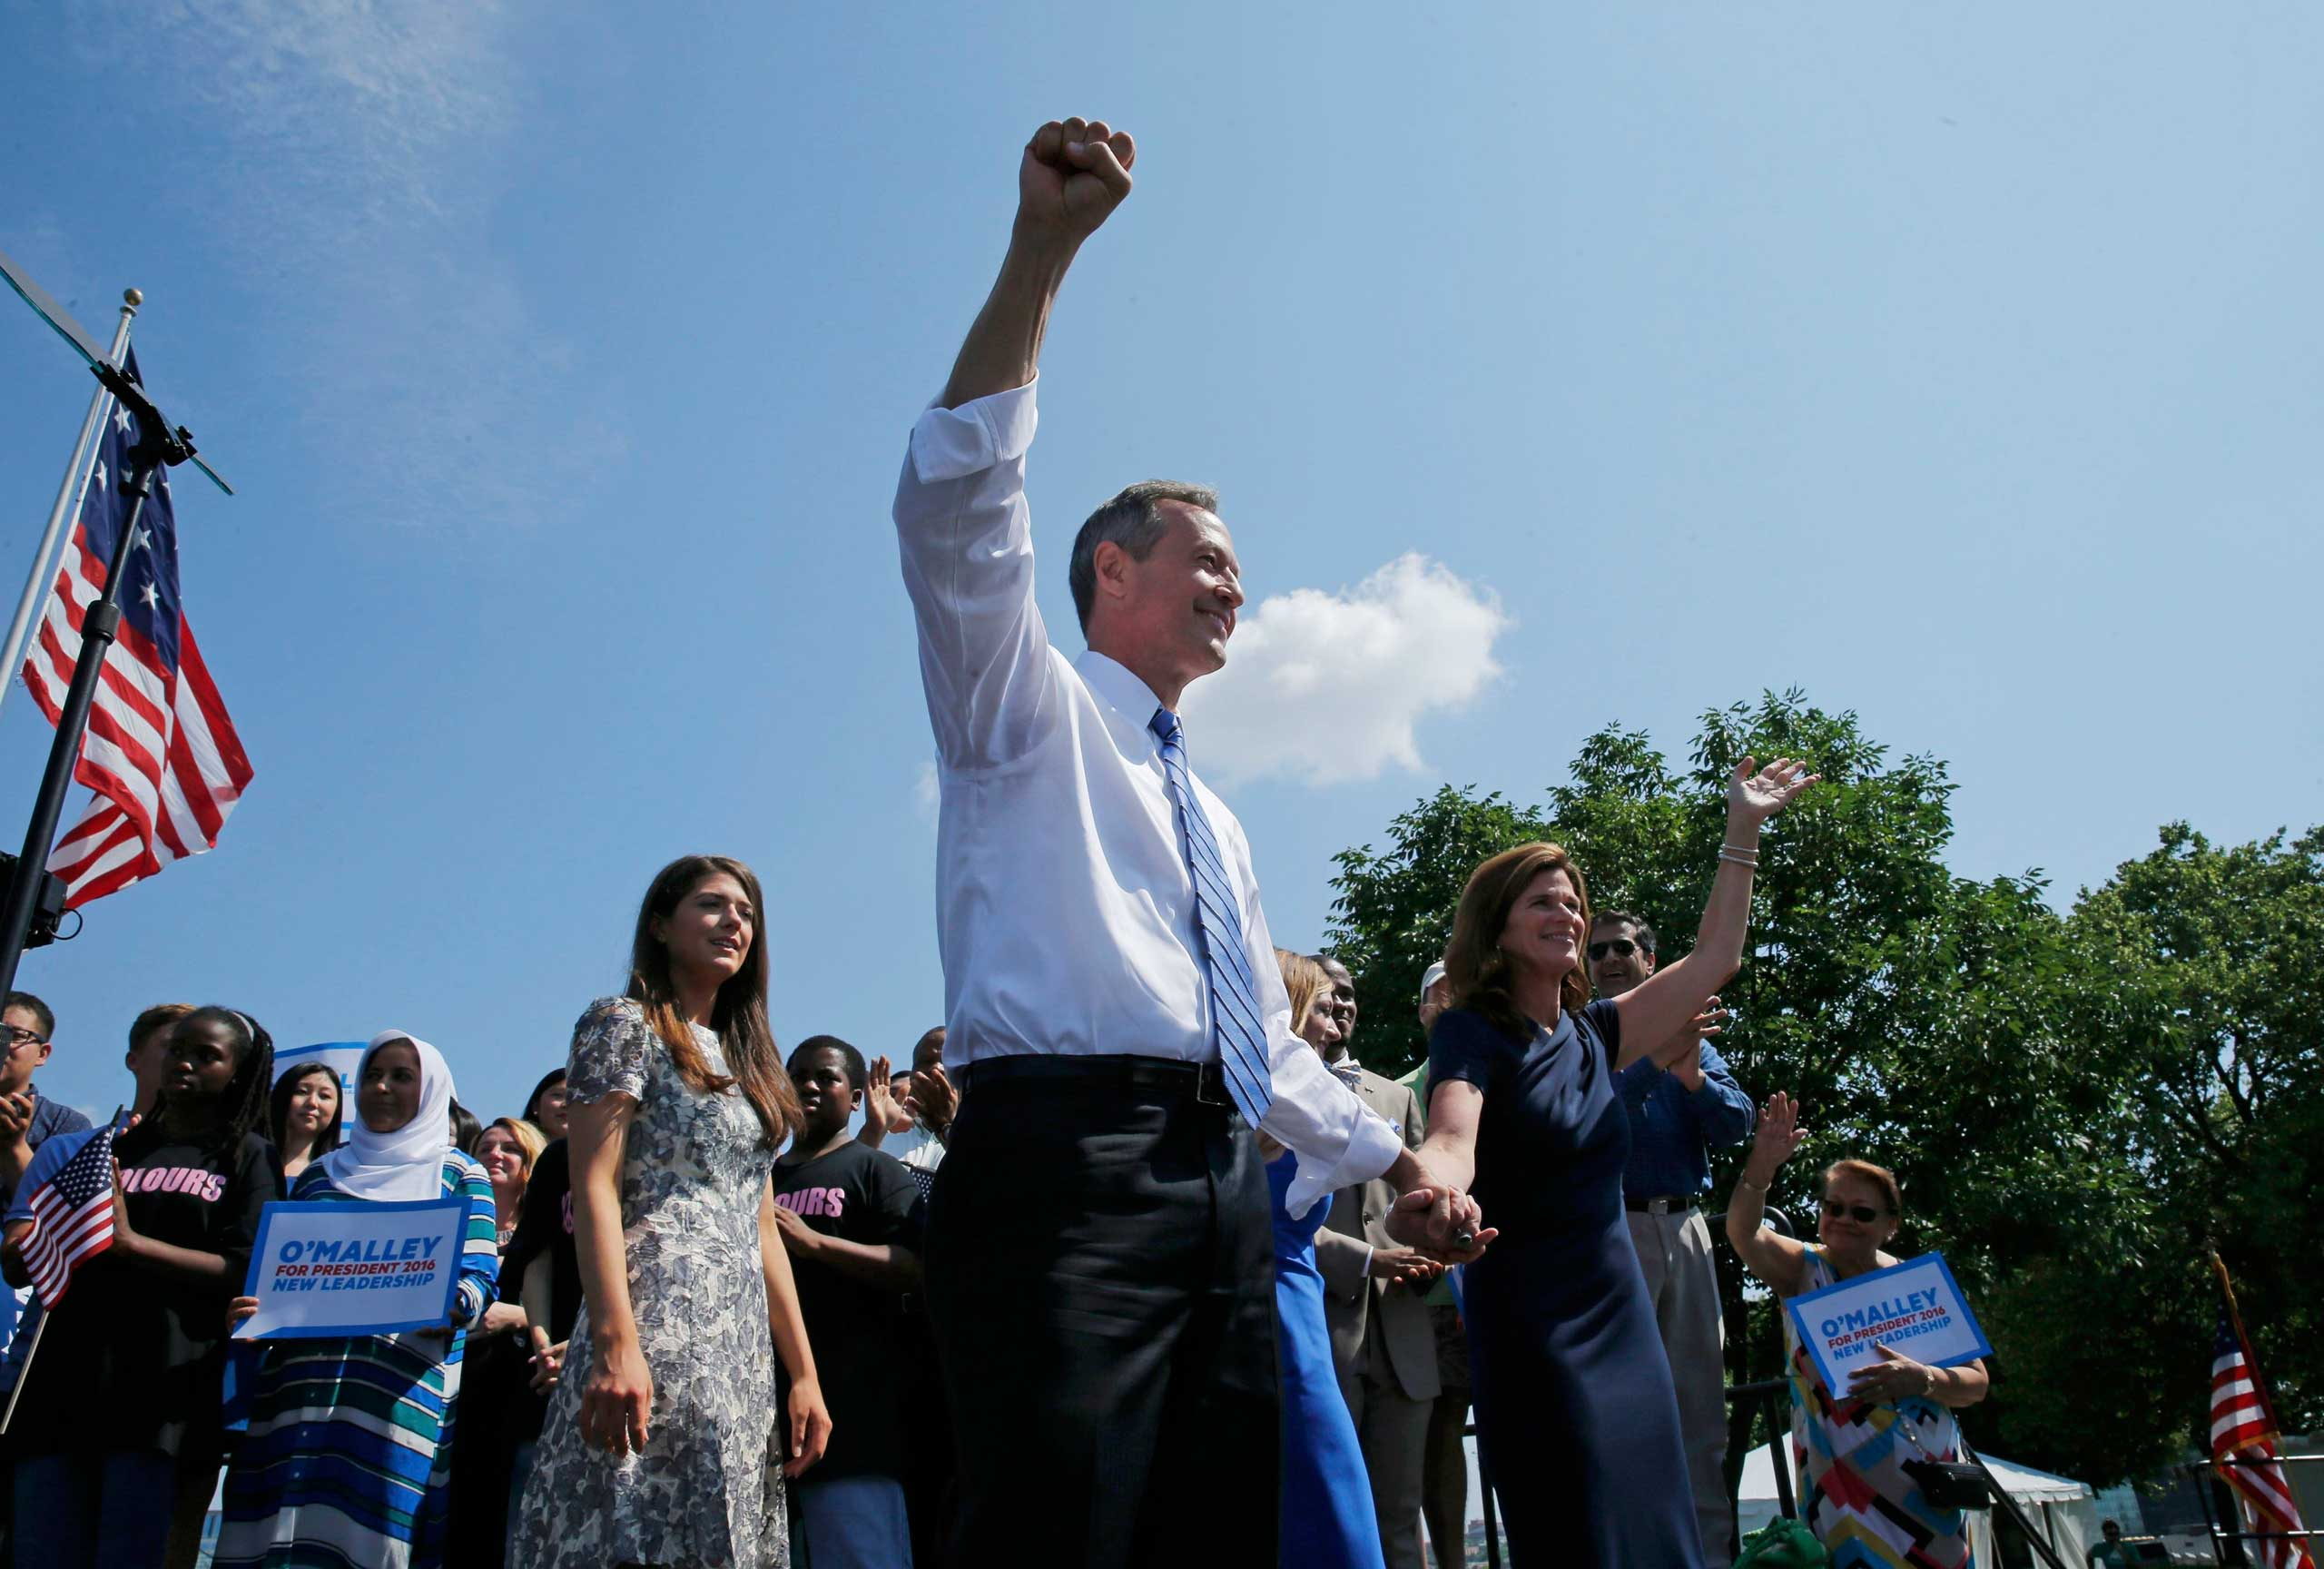 Former Maryland Governor Martin O'Malley is joined by his wife Katie O'Malley (R) as he announces his intention to seek the Democratic presidential nomination during a speech at Federal Hill Park in Baltimore on May 30, 2015.